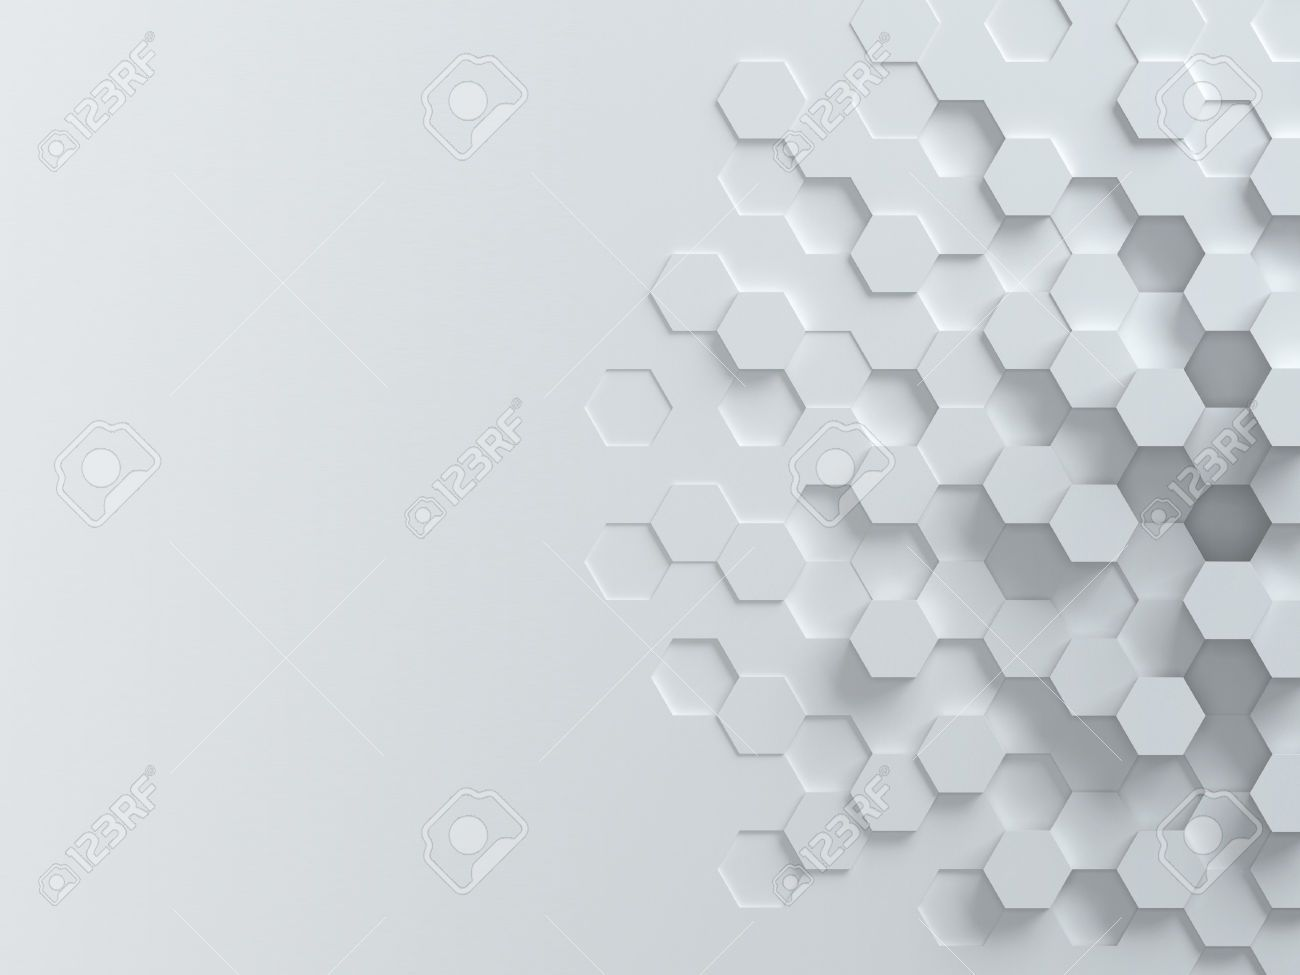 Black And White Vectors Hexagonal Abstract 3d Background